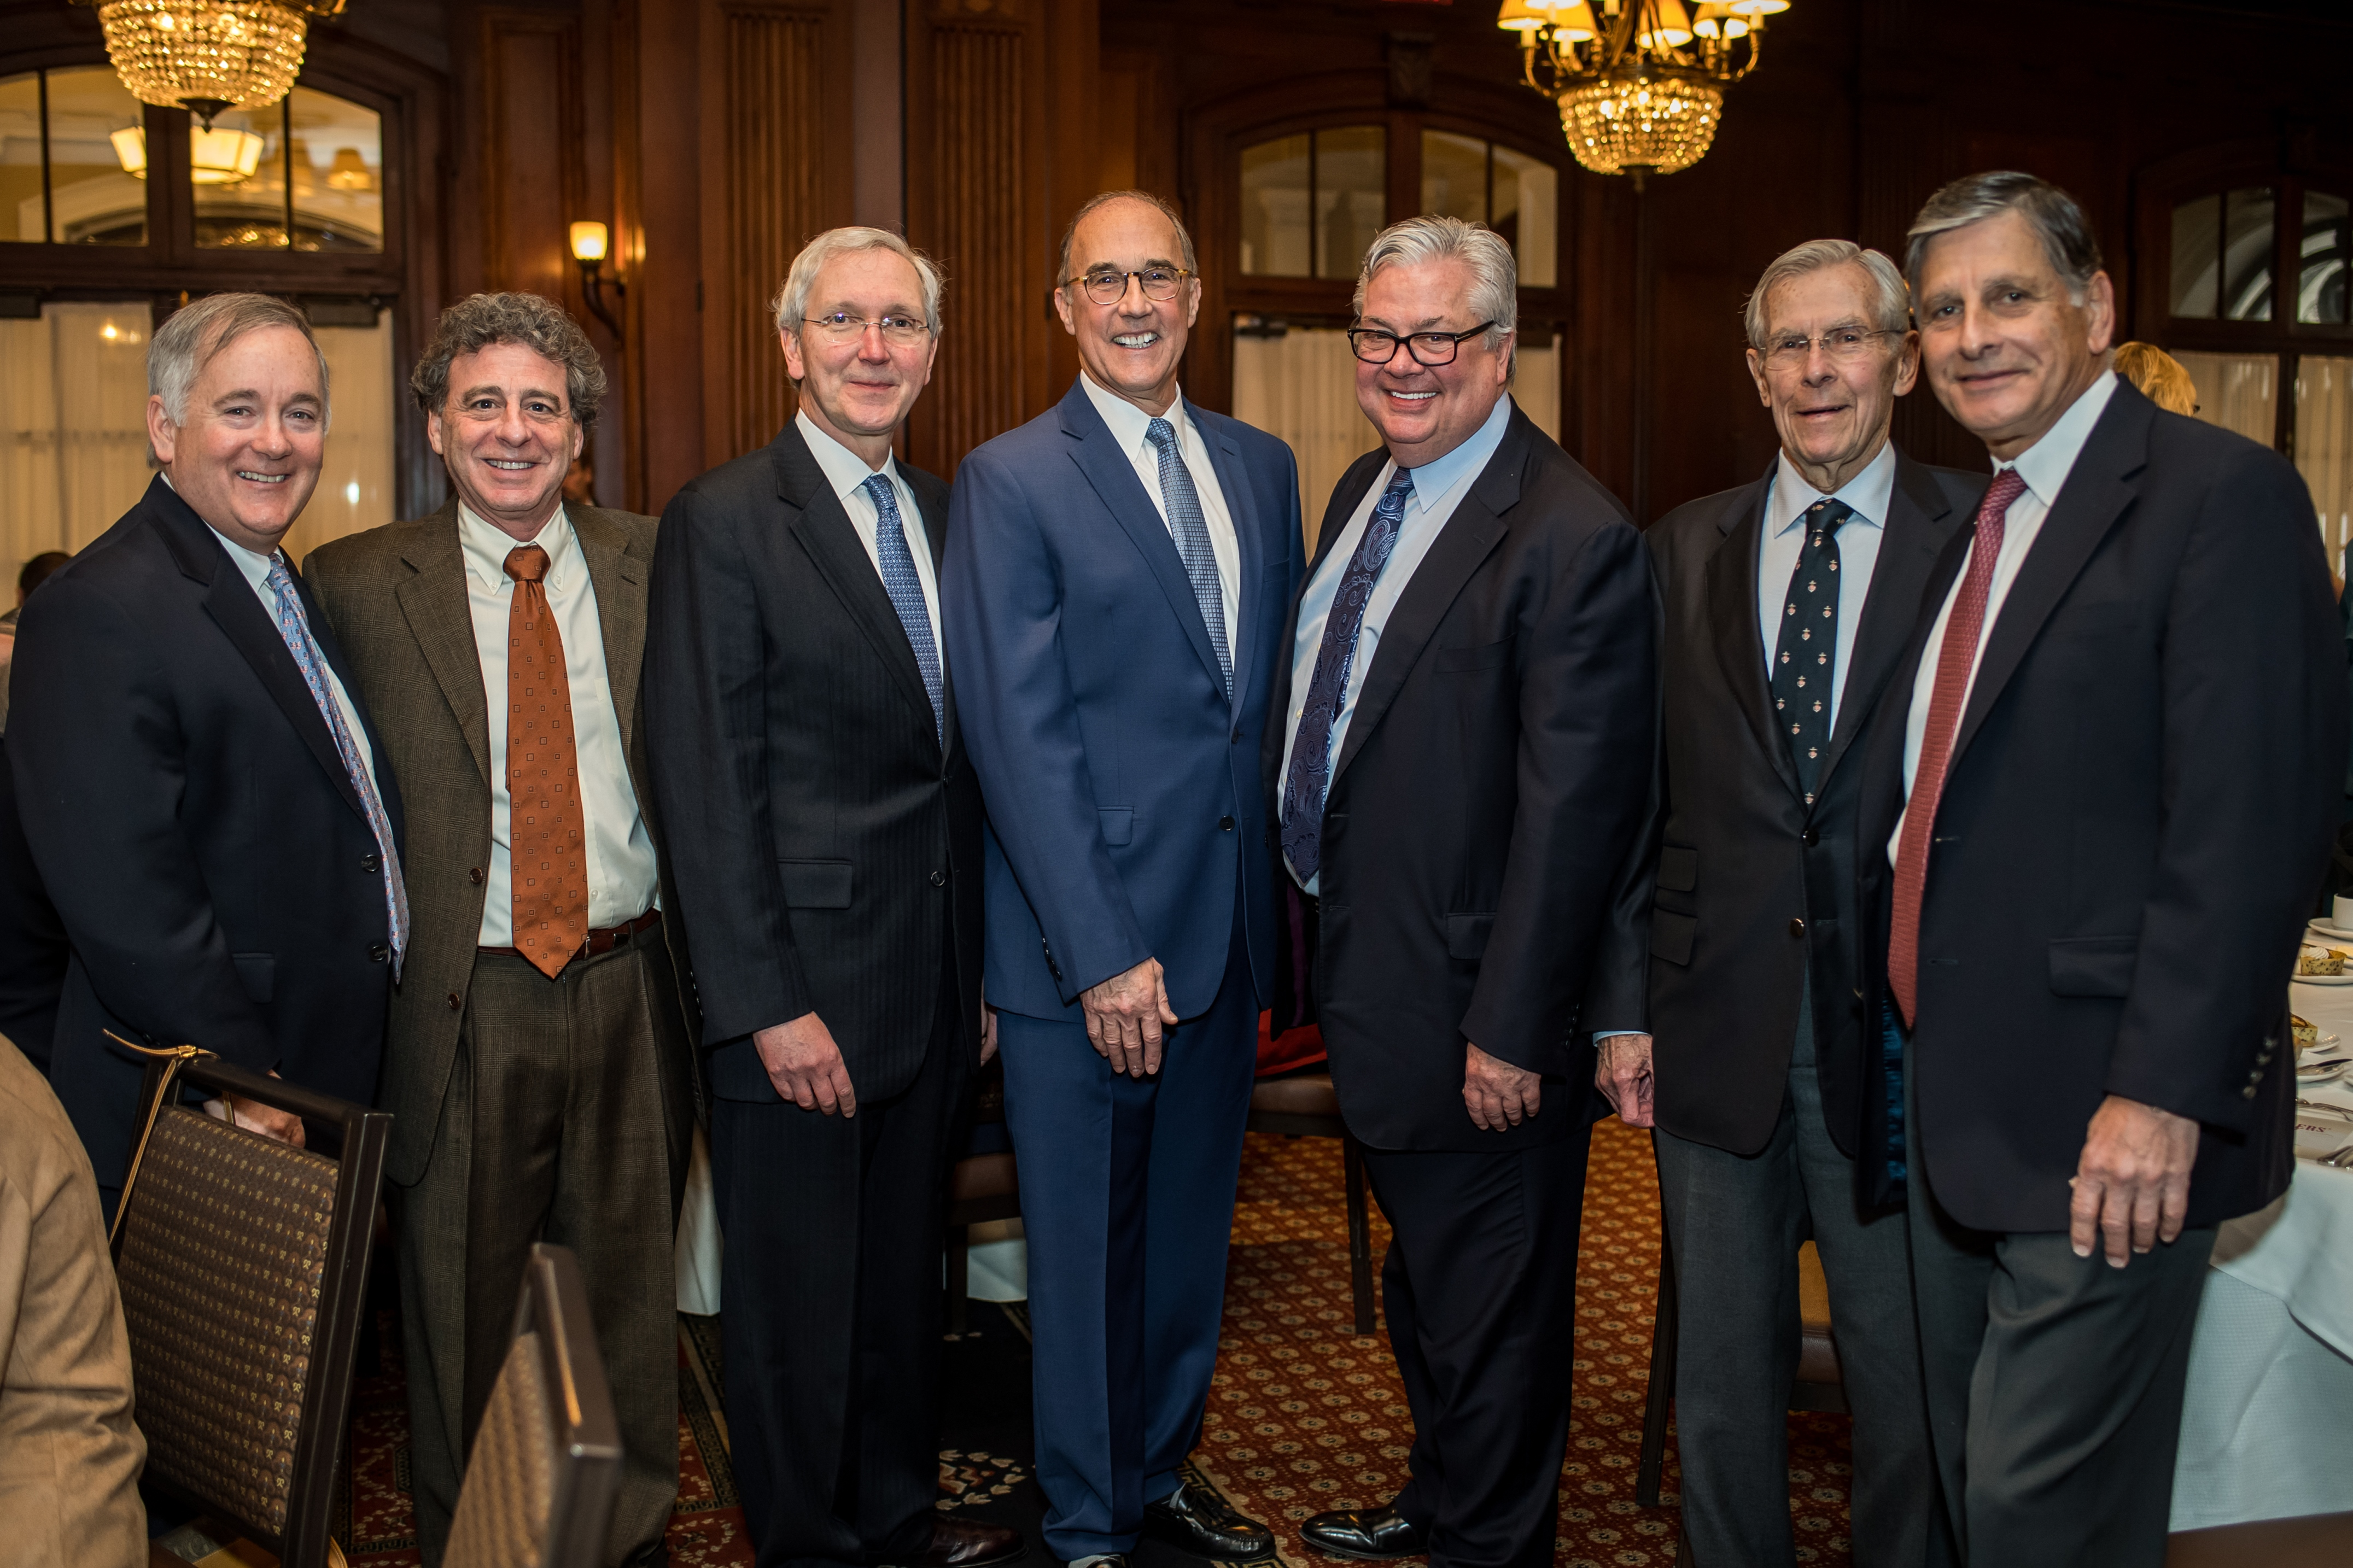 Lankenau Medical Center's chief of cardiac surgery Francis Sutter honored by alma mater